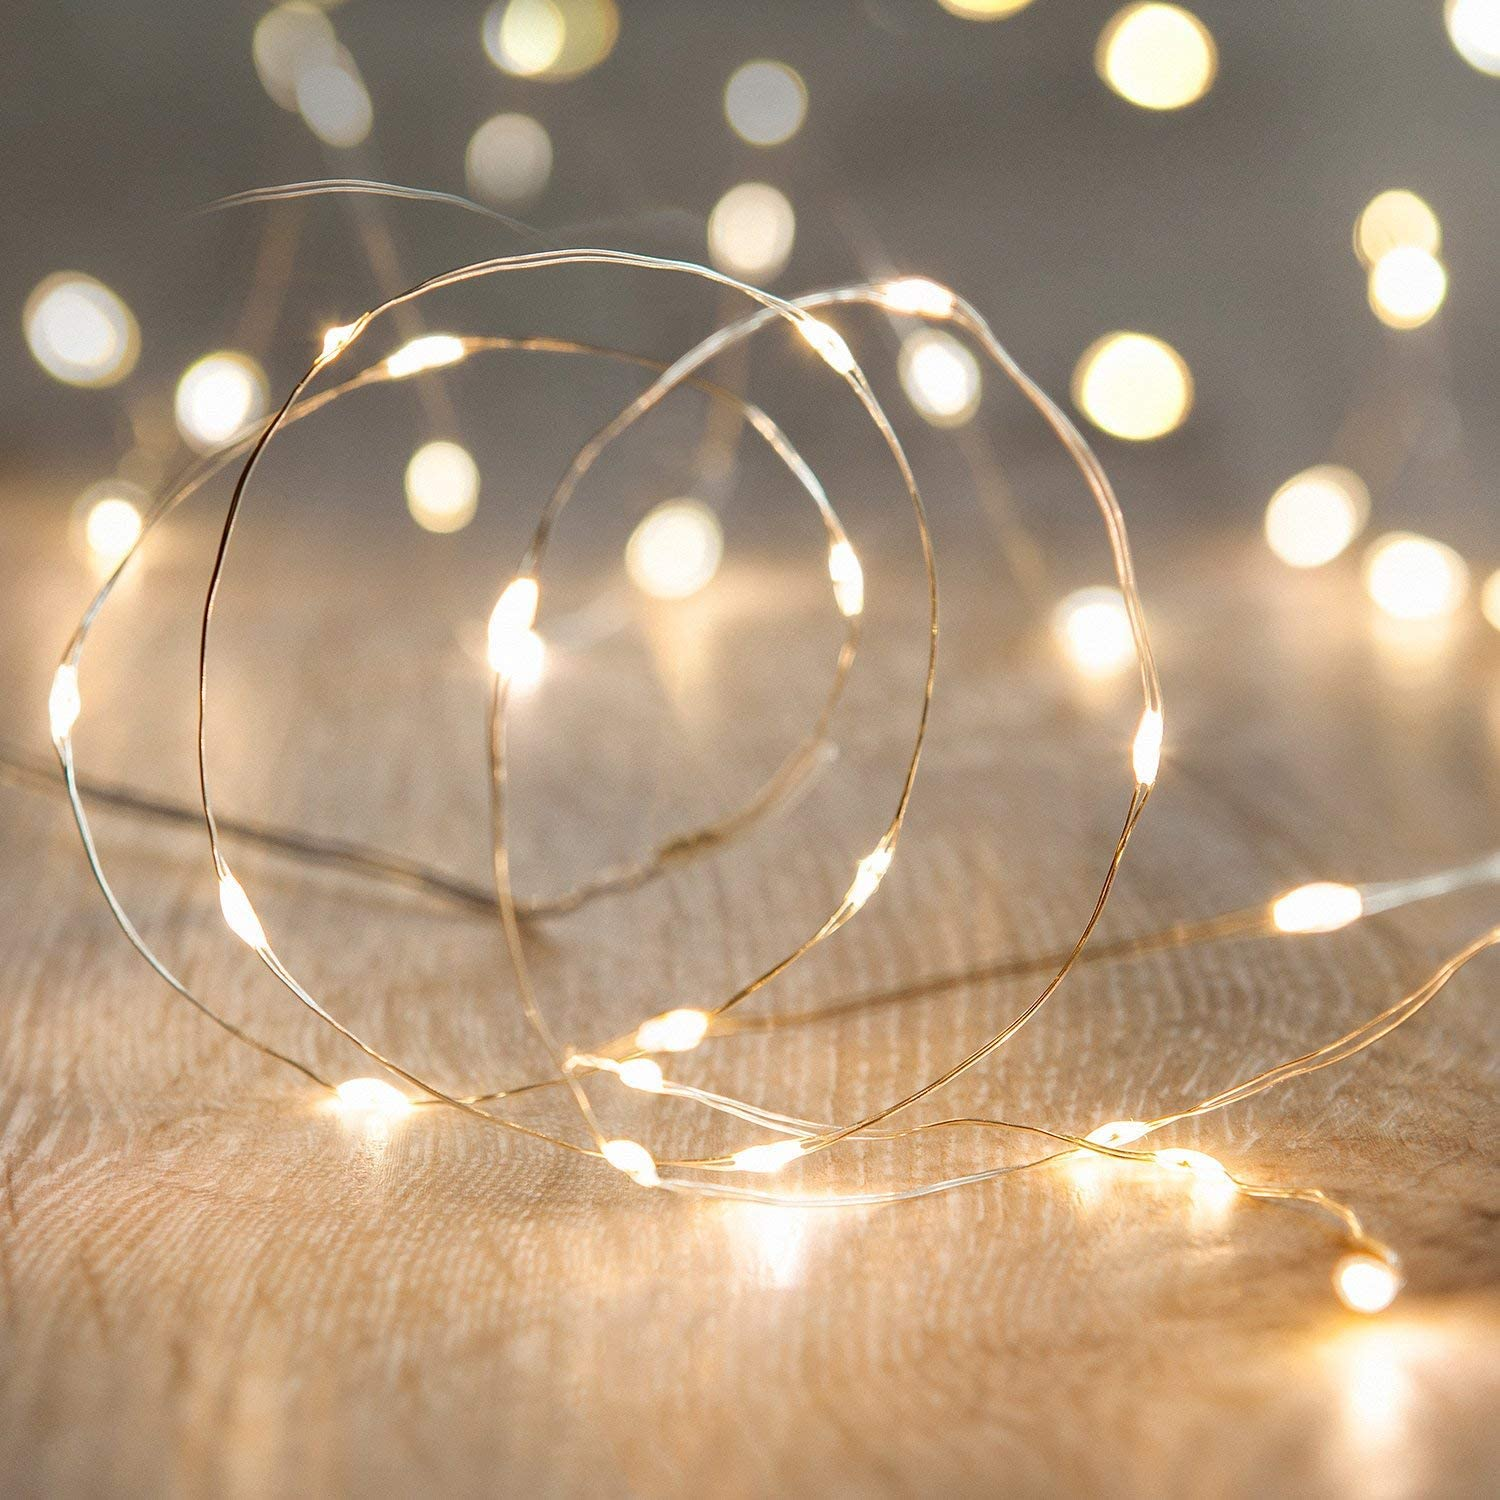 LED String Lights, ANJAYLIA 16.5Ft/5M 50leds Battery Operated Fairy Lights for Garden Home Party Wedding Festival Decorations(Warm White)